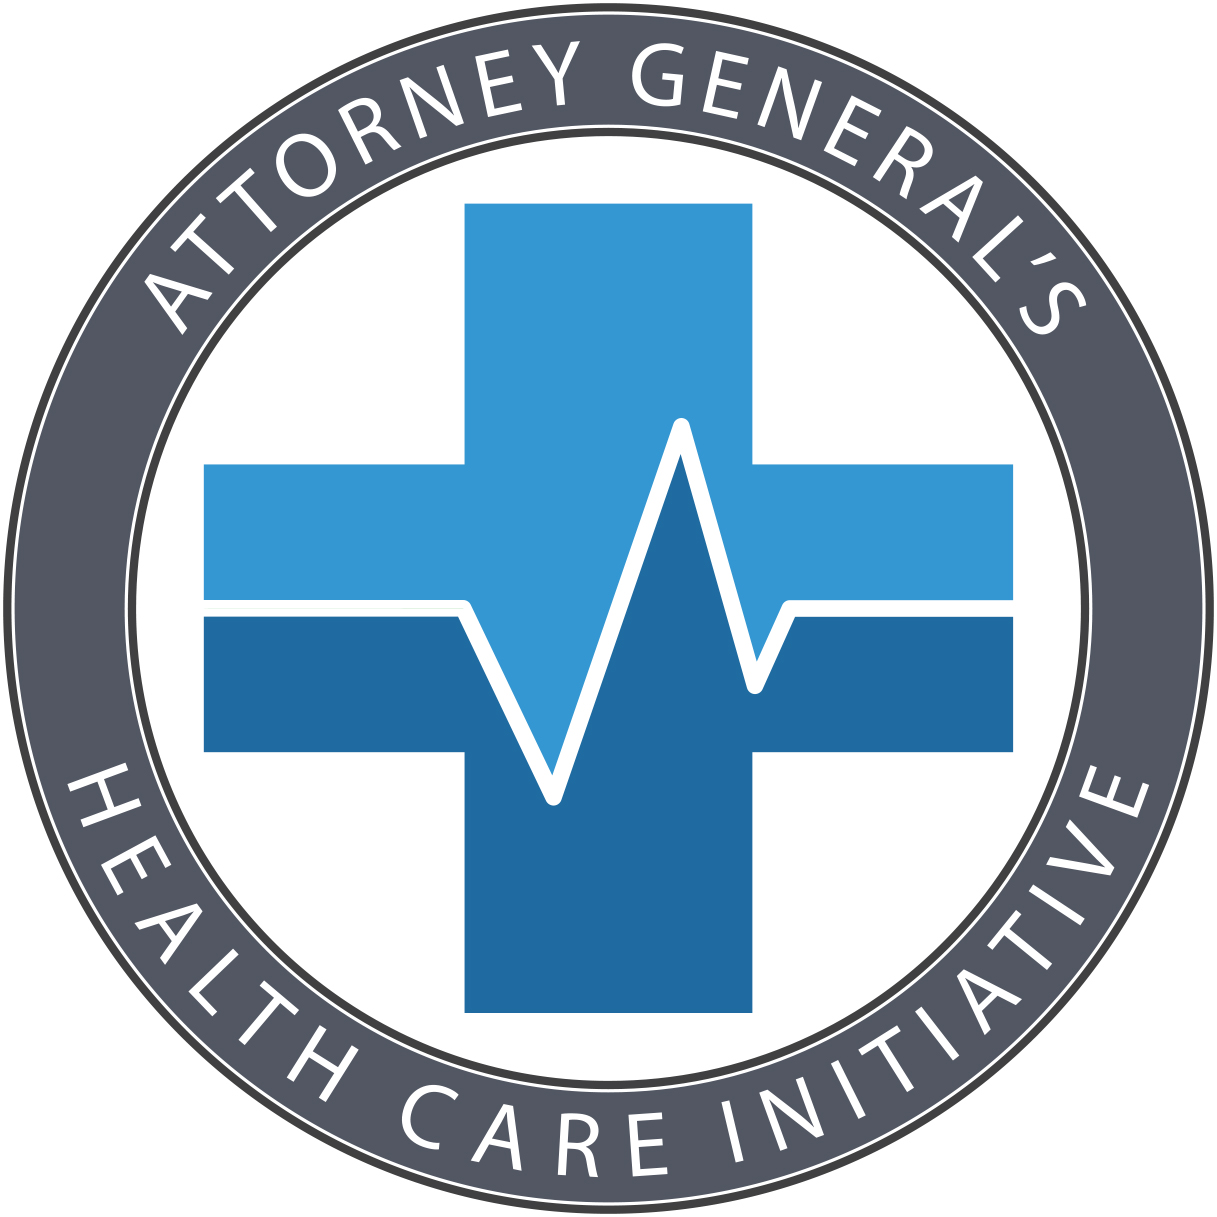 Attorney General's Health Care Initiative logo